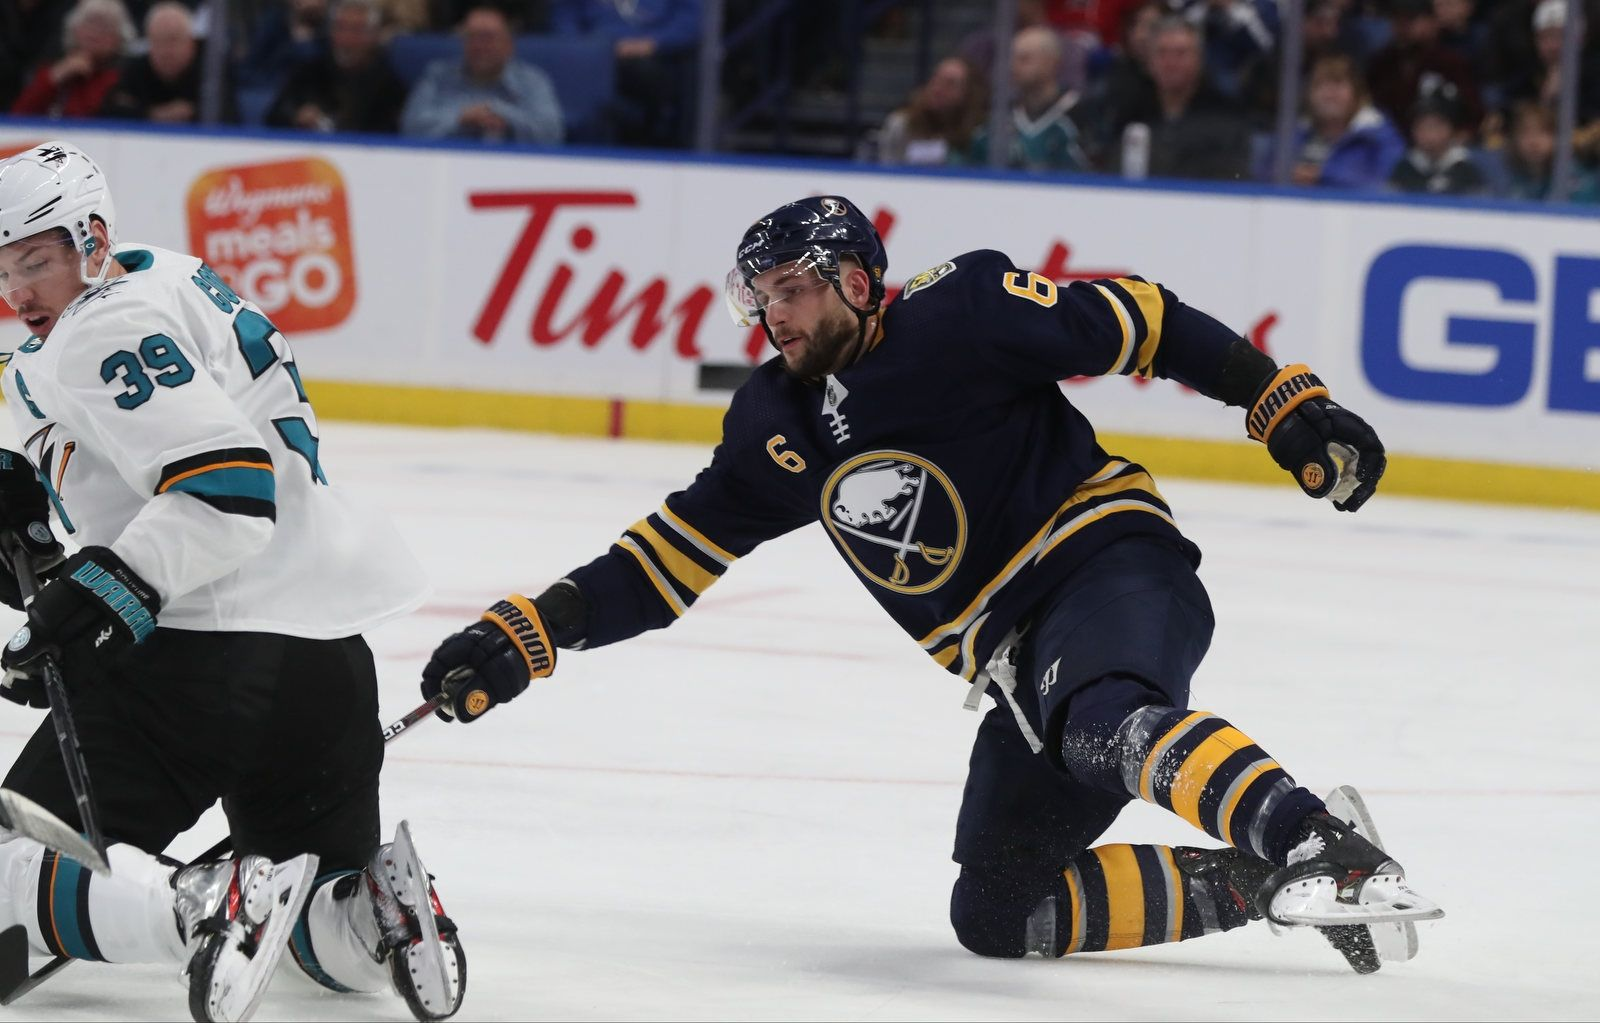 Buffalo Sabres defenseman Marco Scandella (6) battles San Jose Sharks center Logan Couture (39) for the puck in the first period.